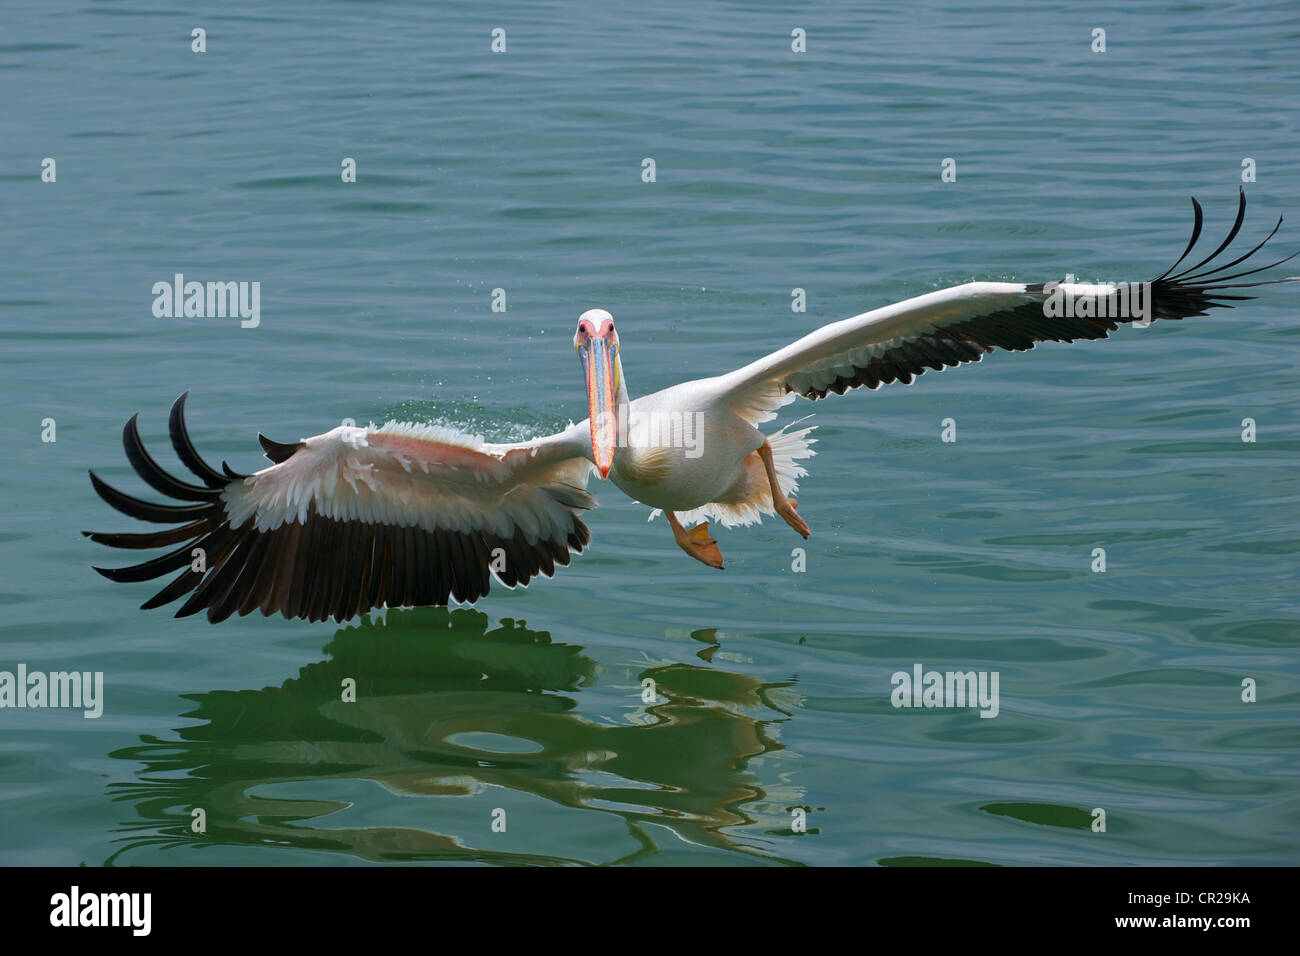 Great White Pelican (Pelecanus onocrotalus) Pelican skimming the water, Walvis Bay, Namibia - Stock Image